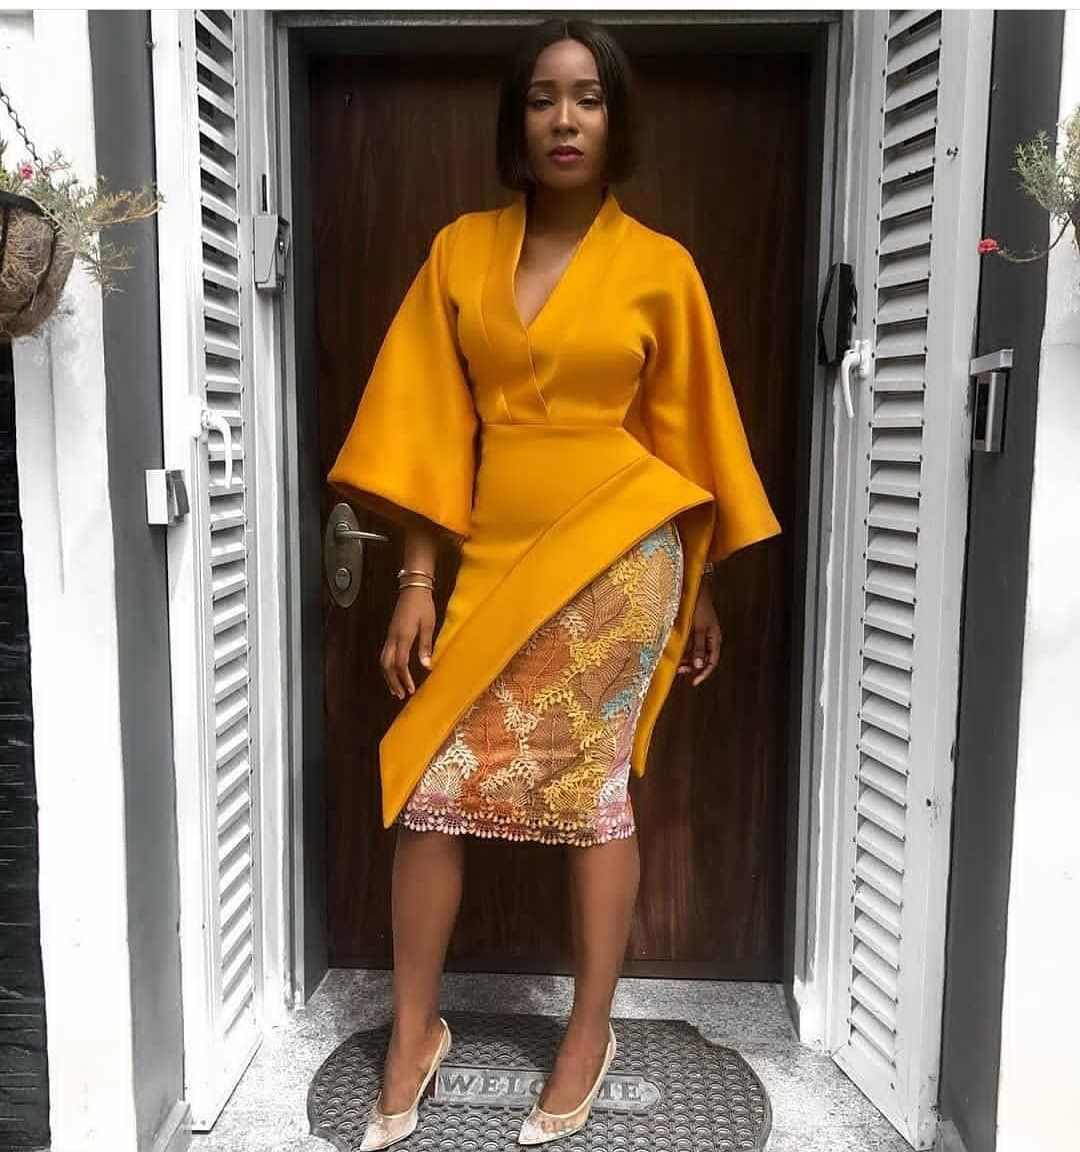 30 African Dresses 2019 Designs : The Most Gorgeous Styles You Must Try | Zaineey's Blog #africandressstyles